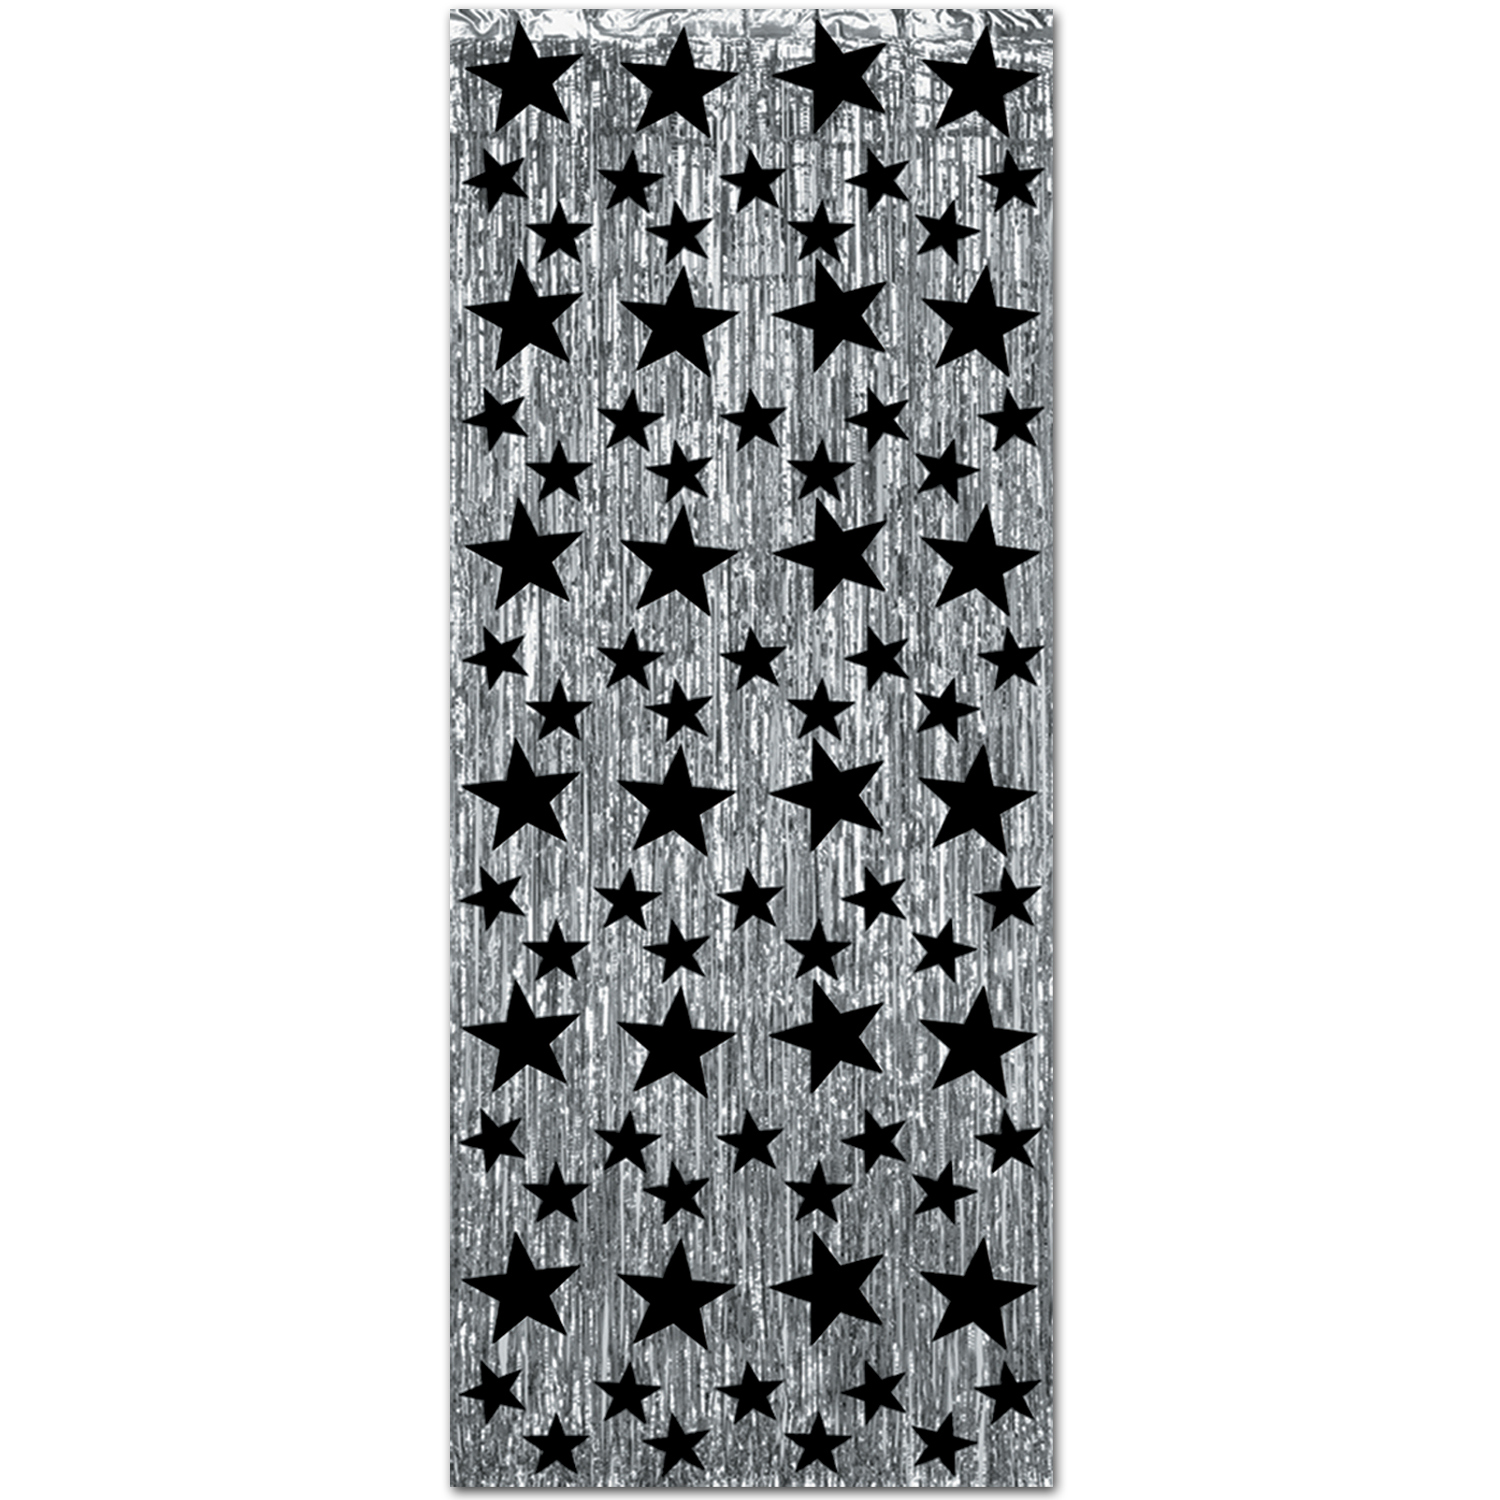 1-Ply Black and Silver Gleam N Curtain (Pack of 6) New years eve, hollywood, black, silver, stars, curtain, metallic, wholesale, inexpensive, bulk